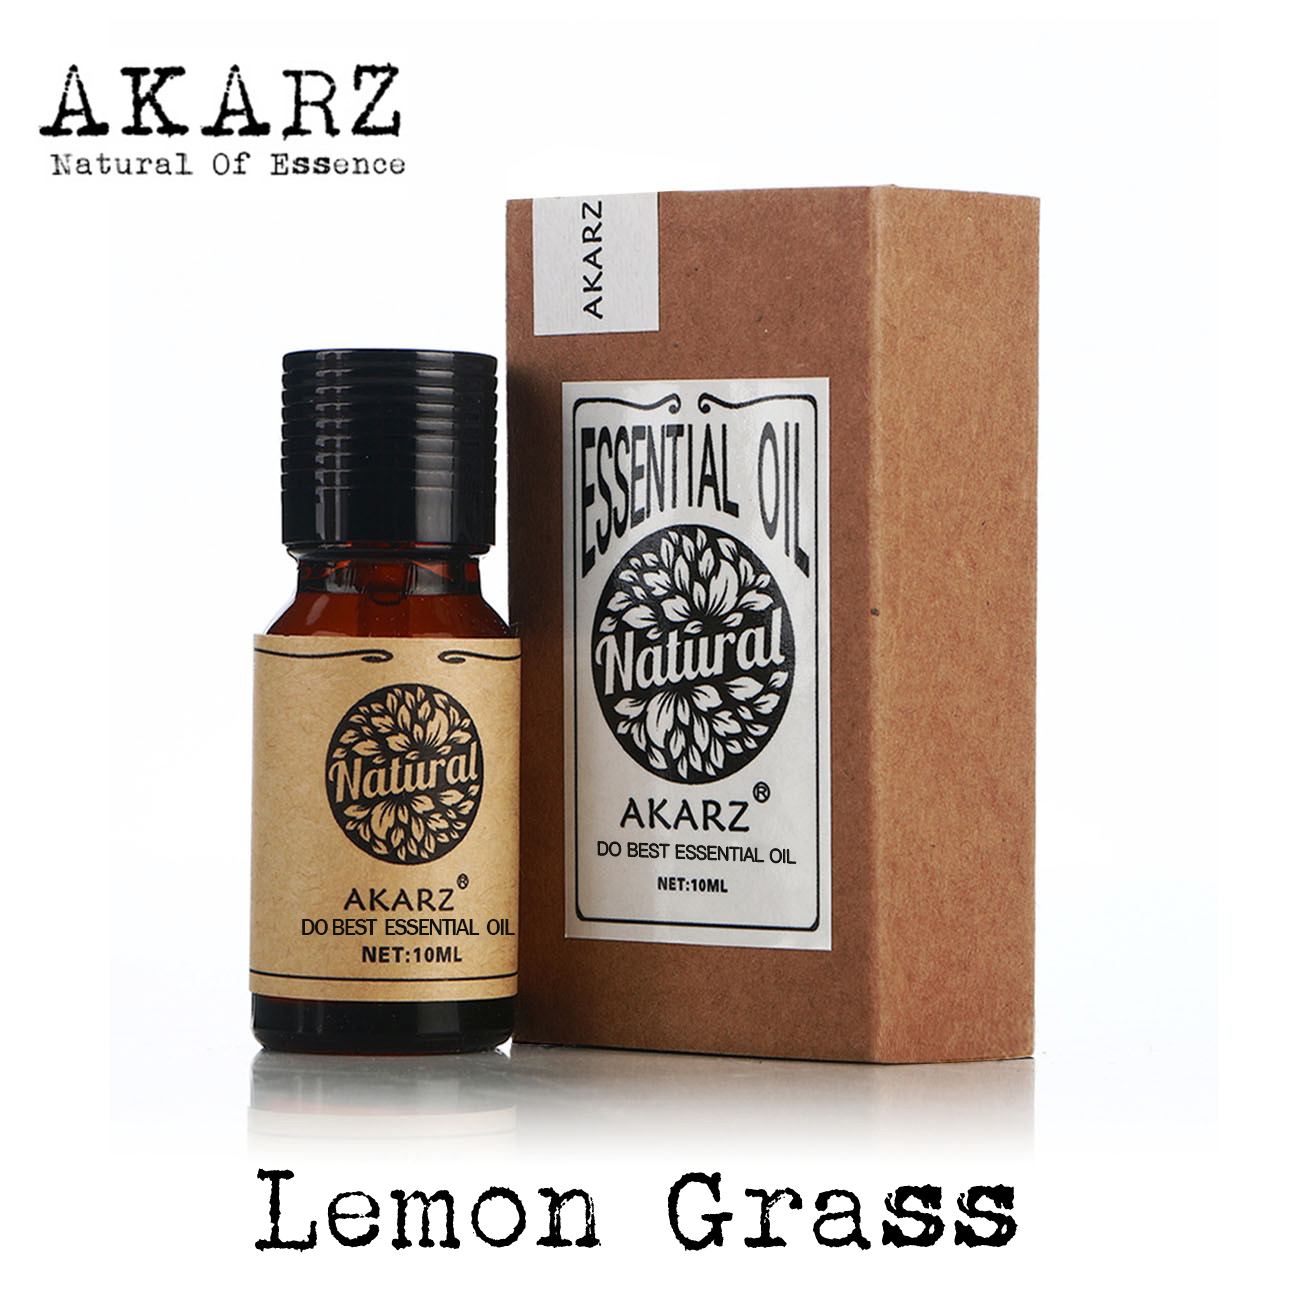 AKARZ Famous Brand Natural Aromatherapy Lemon Grass Essential Oil Prevent Beriberi Mosquito Repellent Relax Lemon Grass Oil